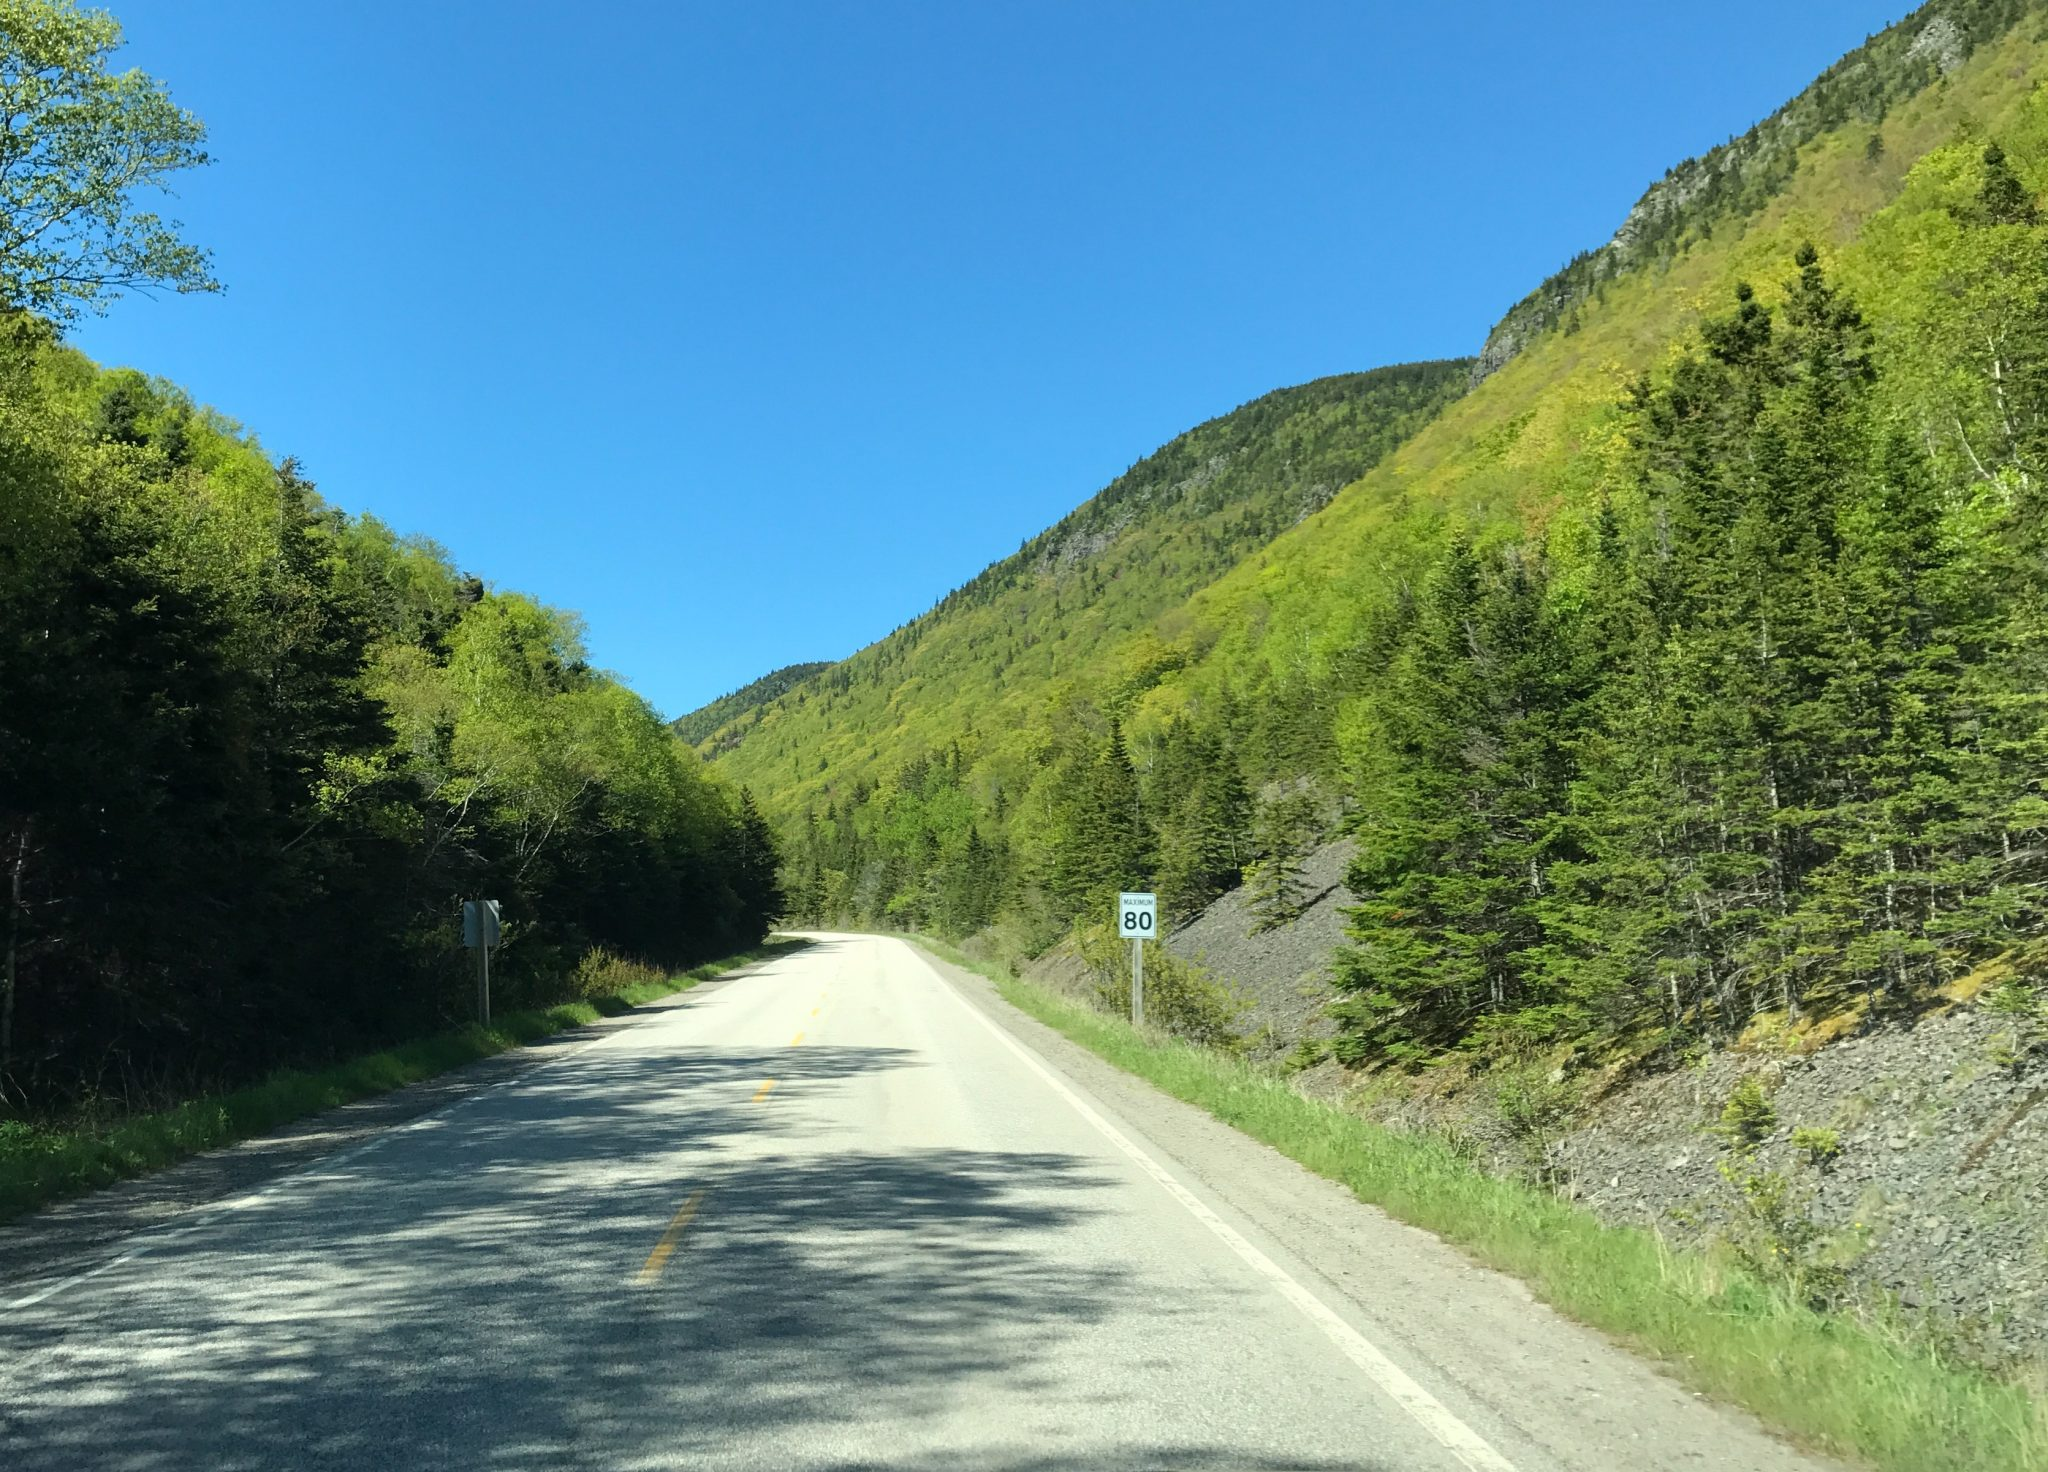 Cabot Trail i Cape Breton National Park, Nova Scotia